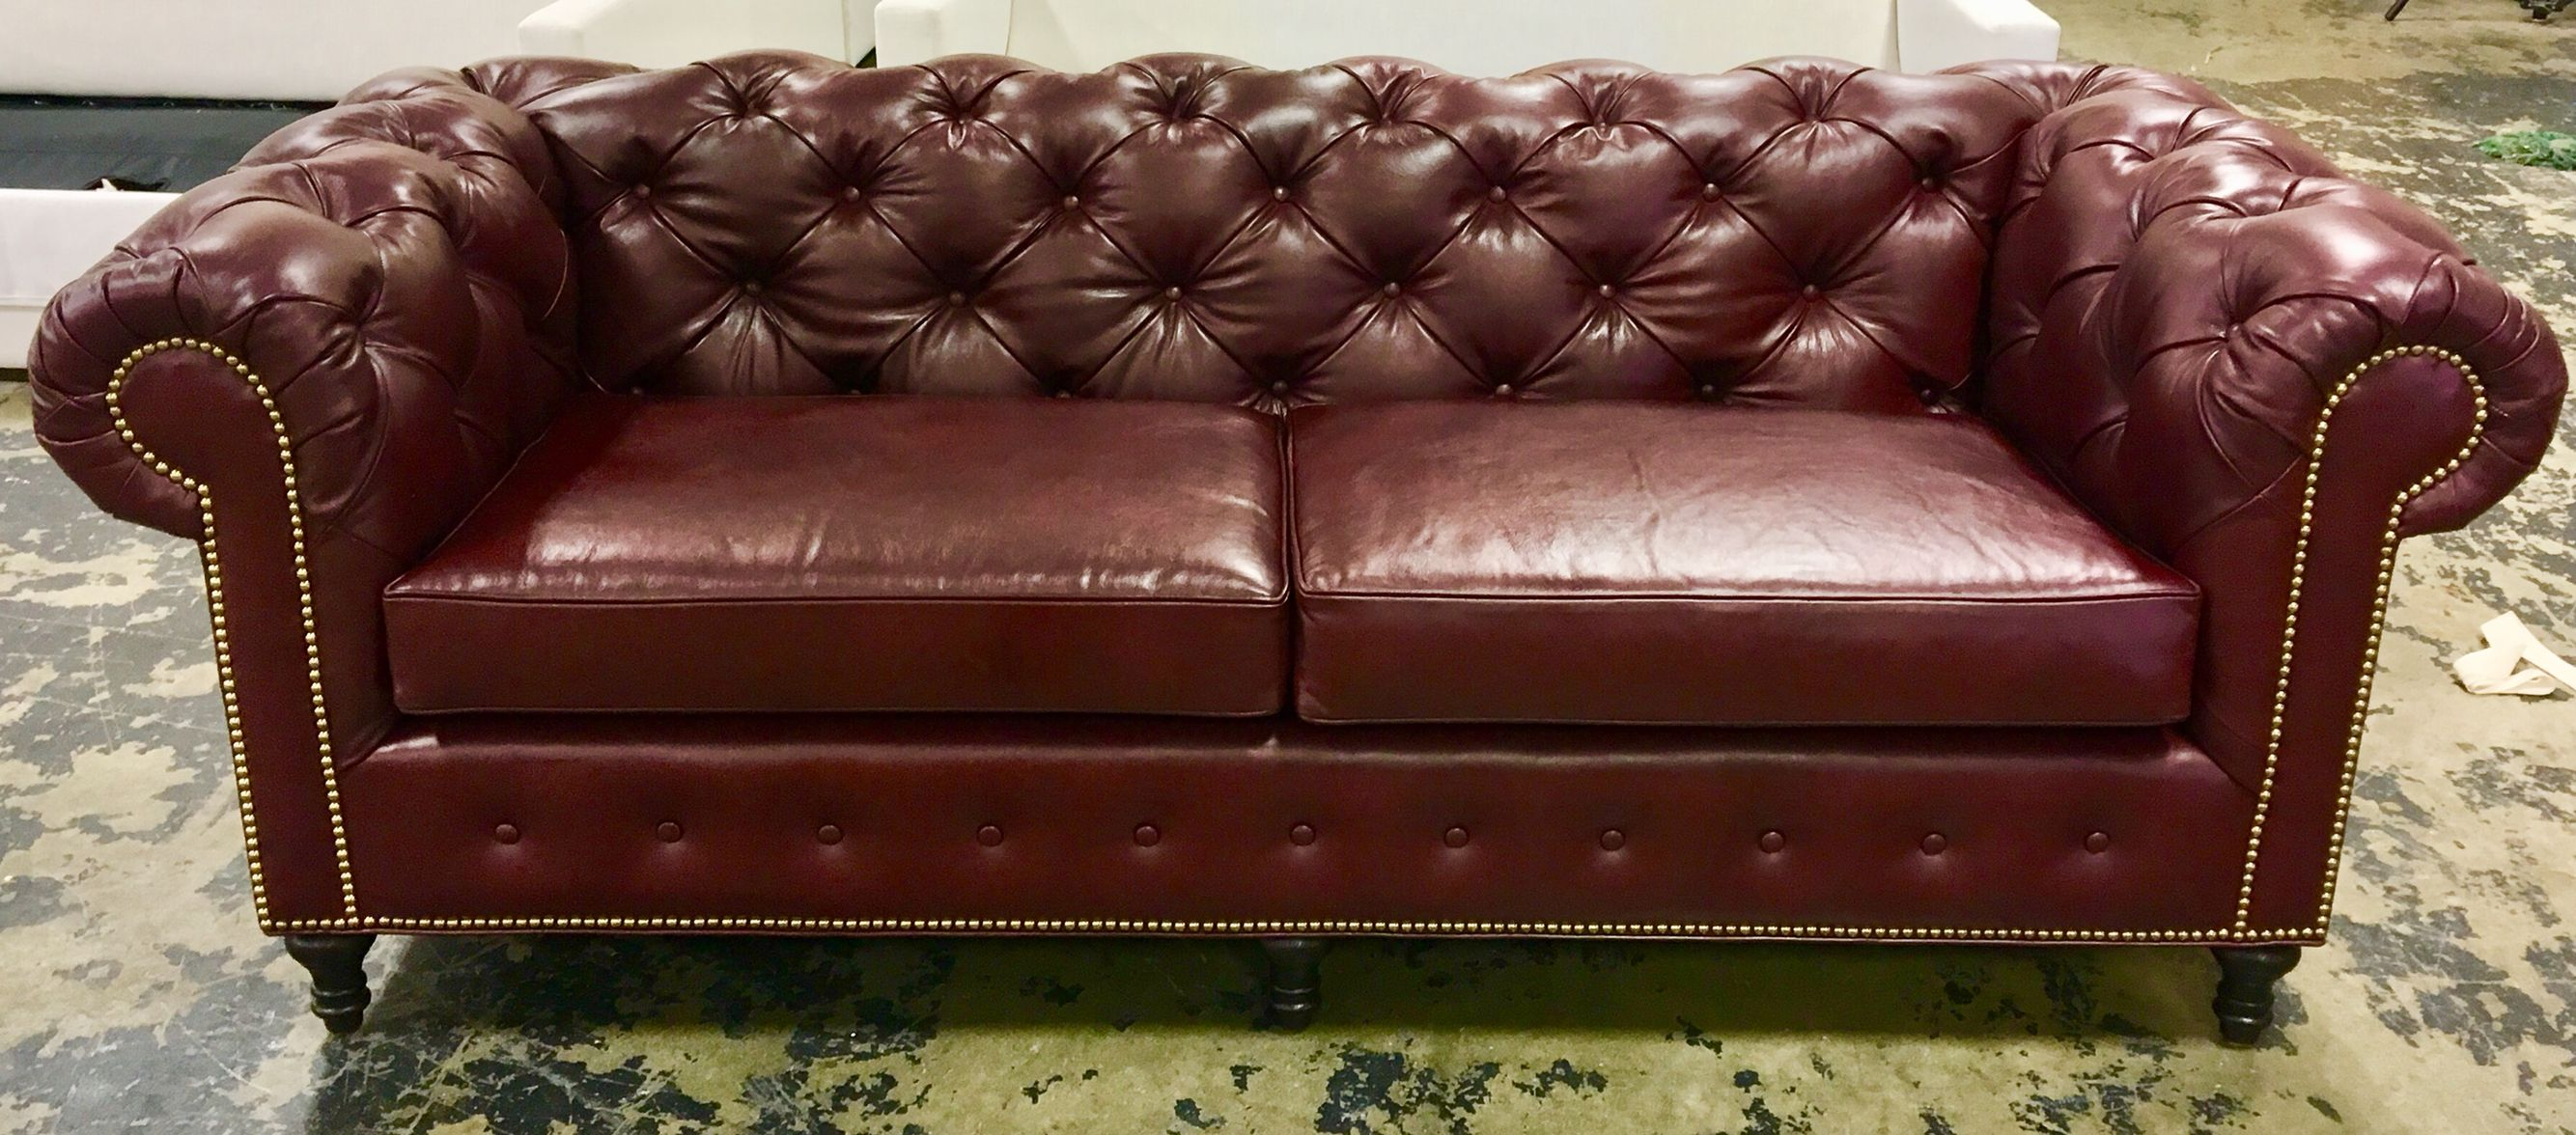 Amazing tufted sofa with nailhead trim executed to